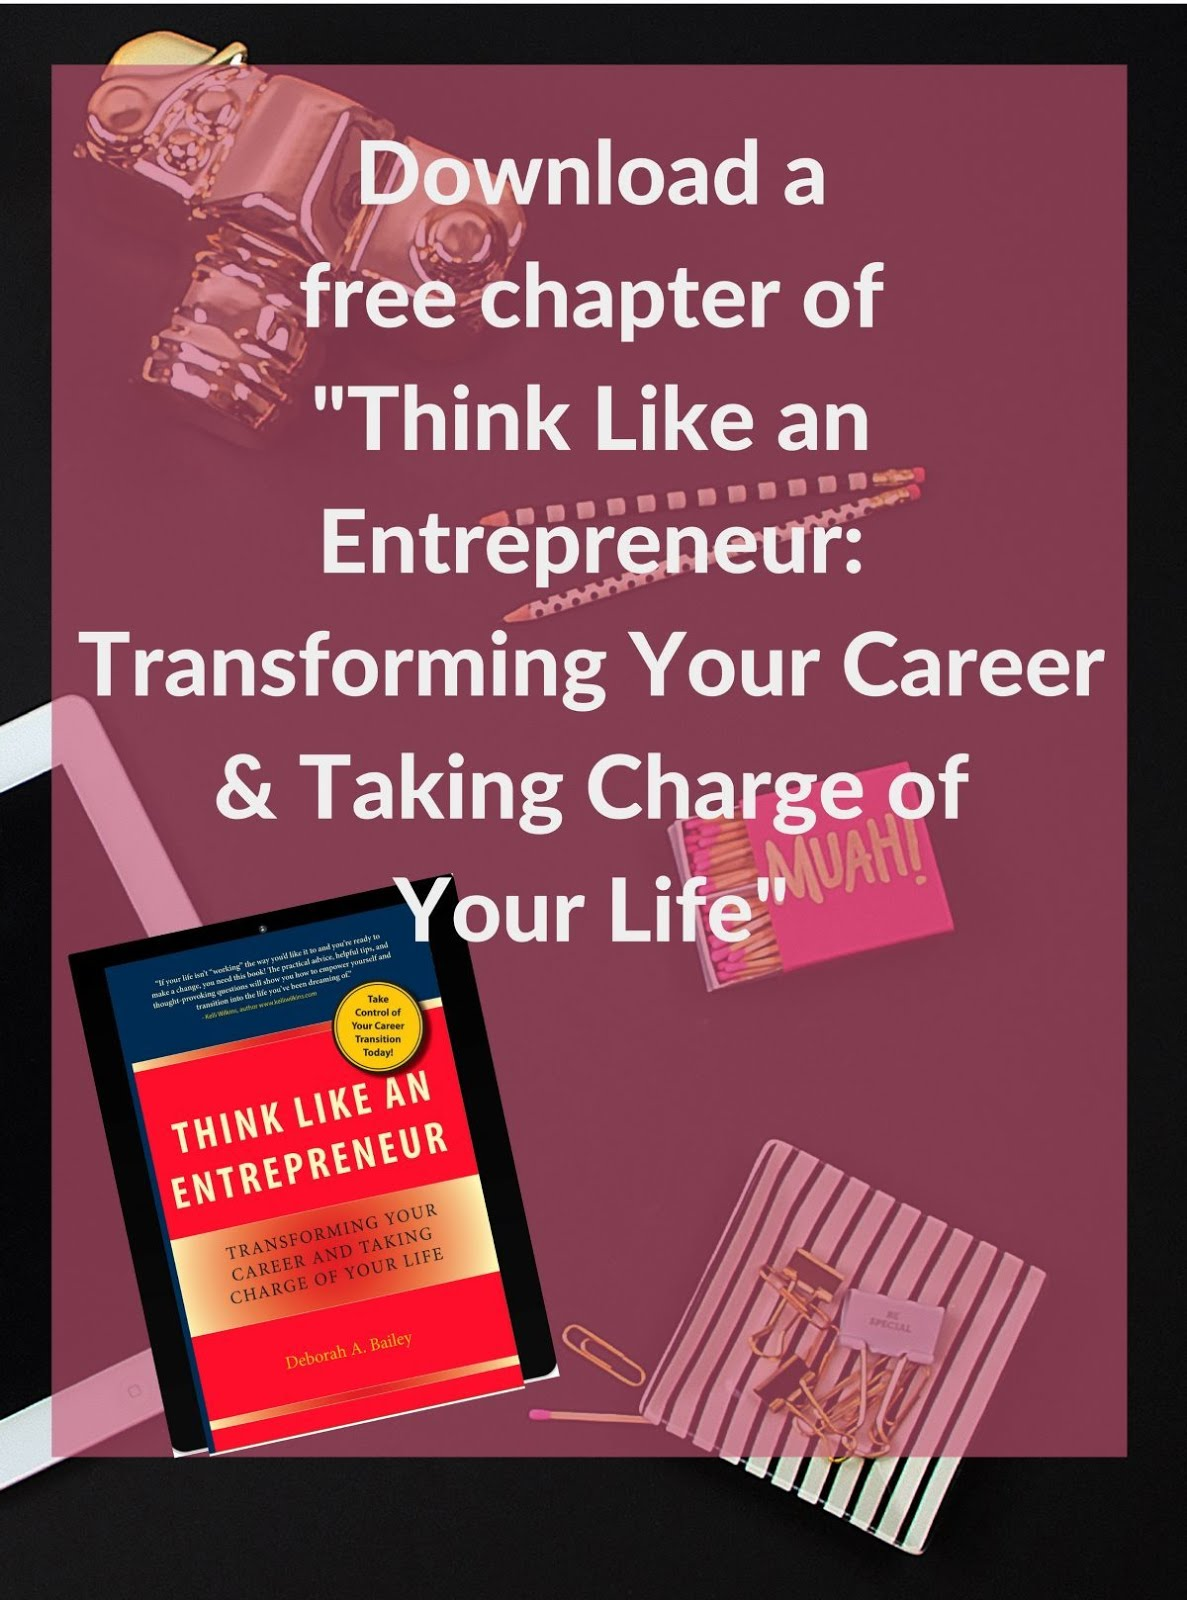 Download a Free Chapter of the Think Like an Entrepreneur book